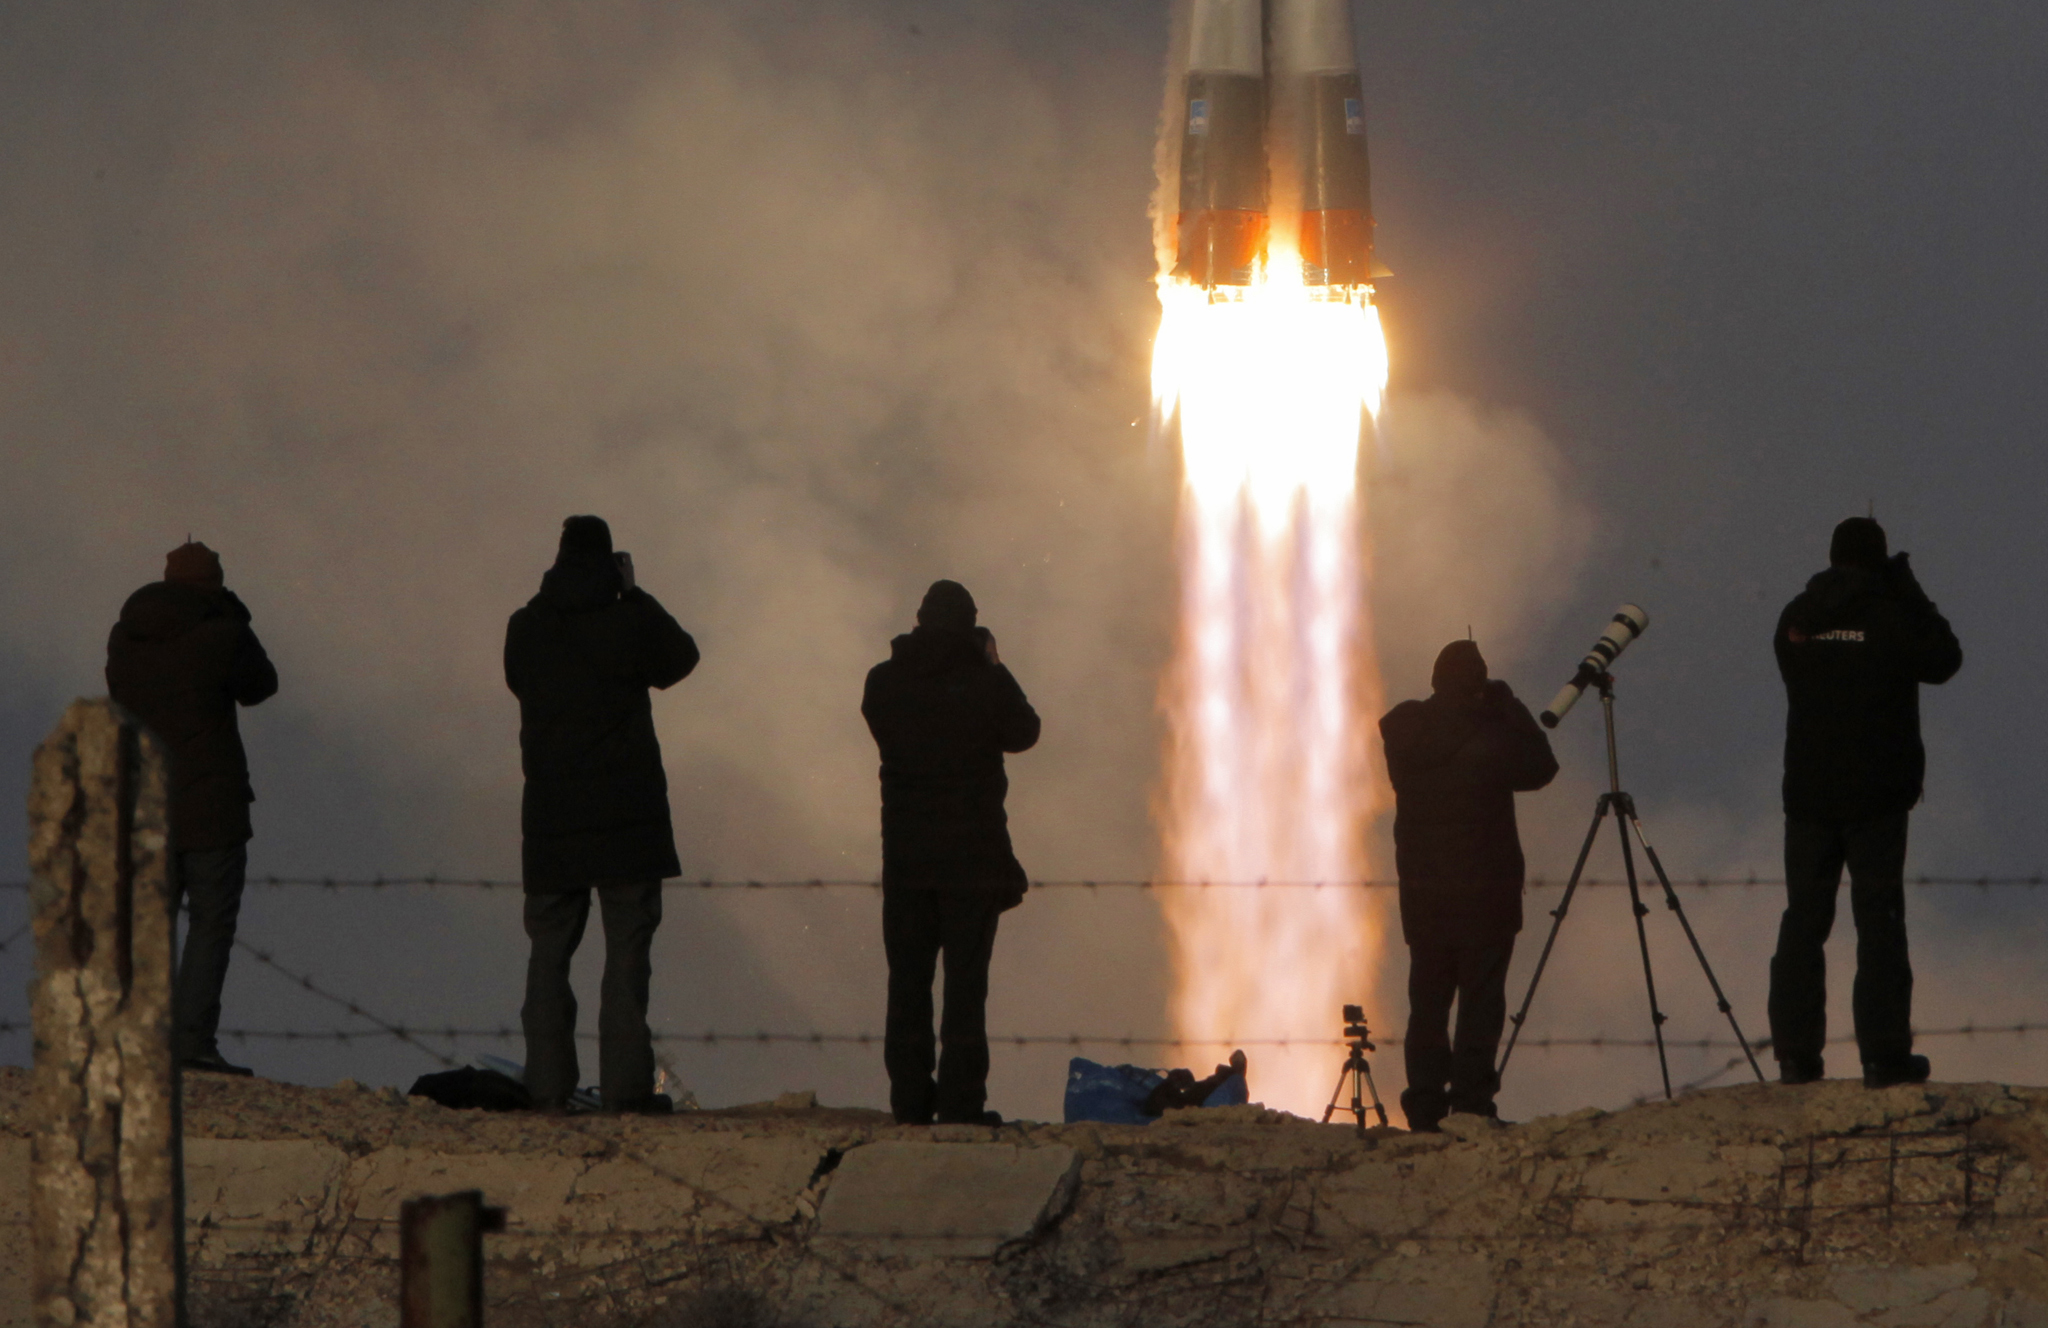 Photo © Dmitry Lovetsky / AP| Baikonur Cosmodrome | The Soyuz-FG rocket booster with Soyuz TMA-19M space ship carrying a new crew to the International Space Station, ISS, blasts off at the Russian leased Baikonur in Kazakhstan.